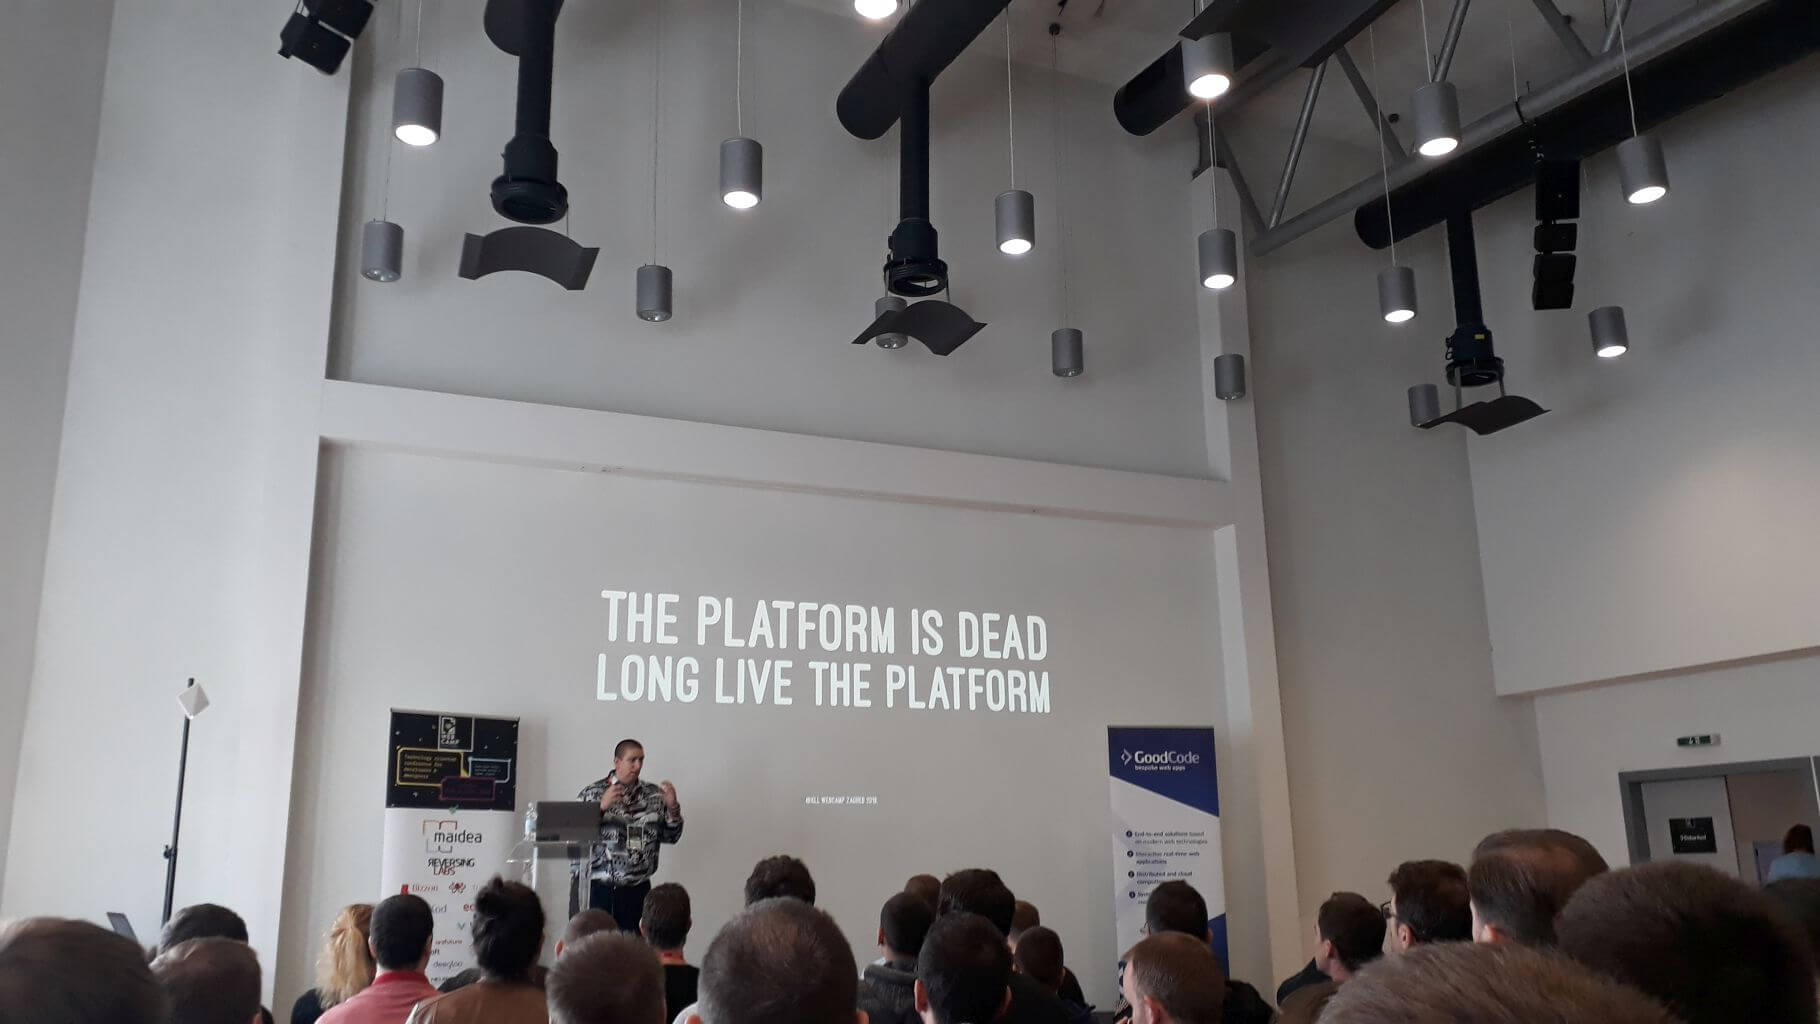 The platform is dead, long live the platform